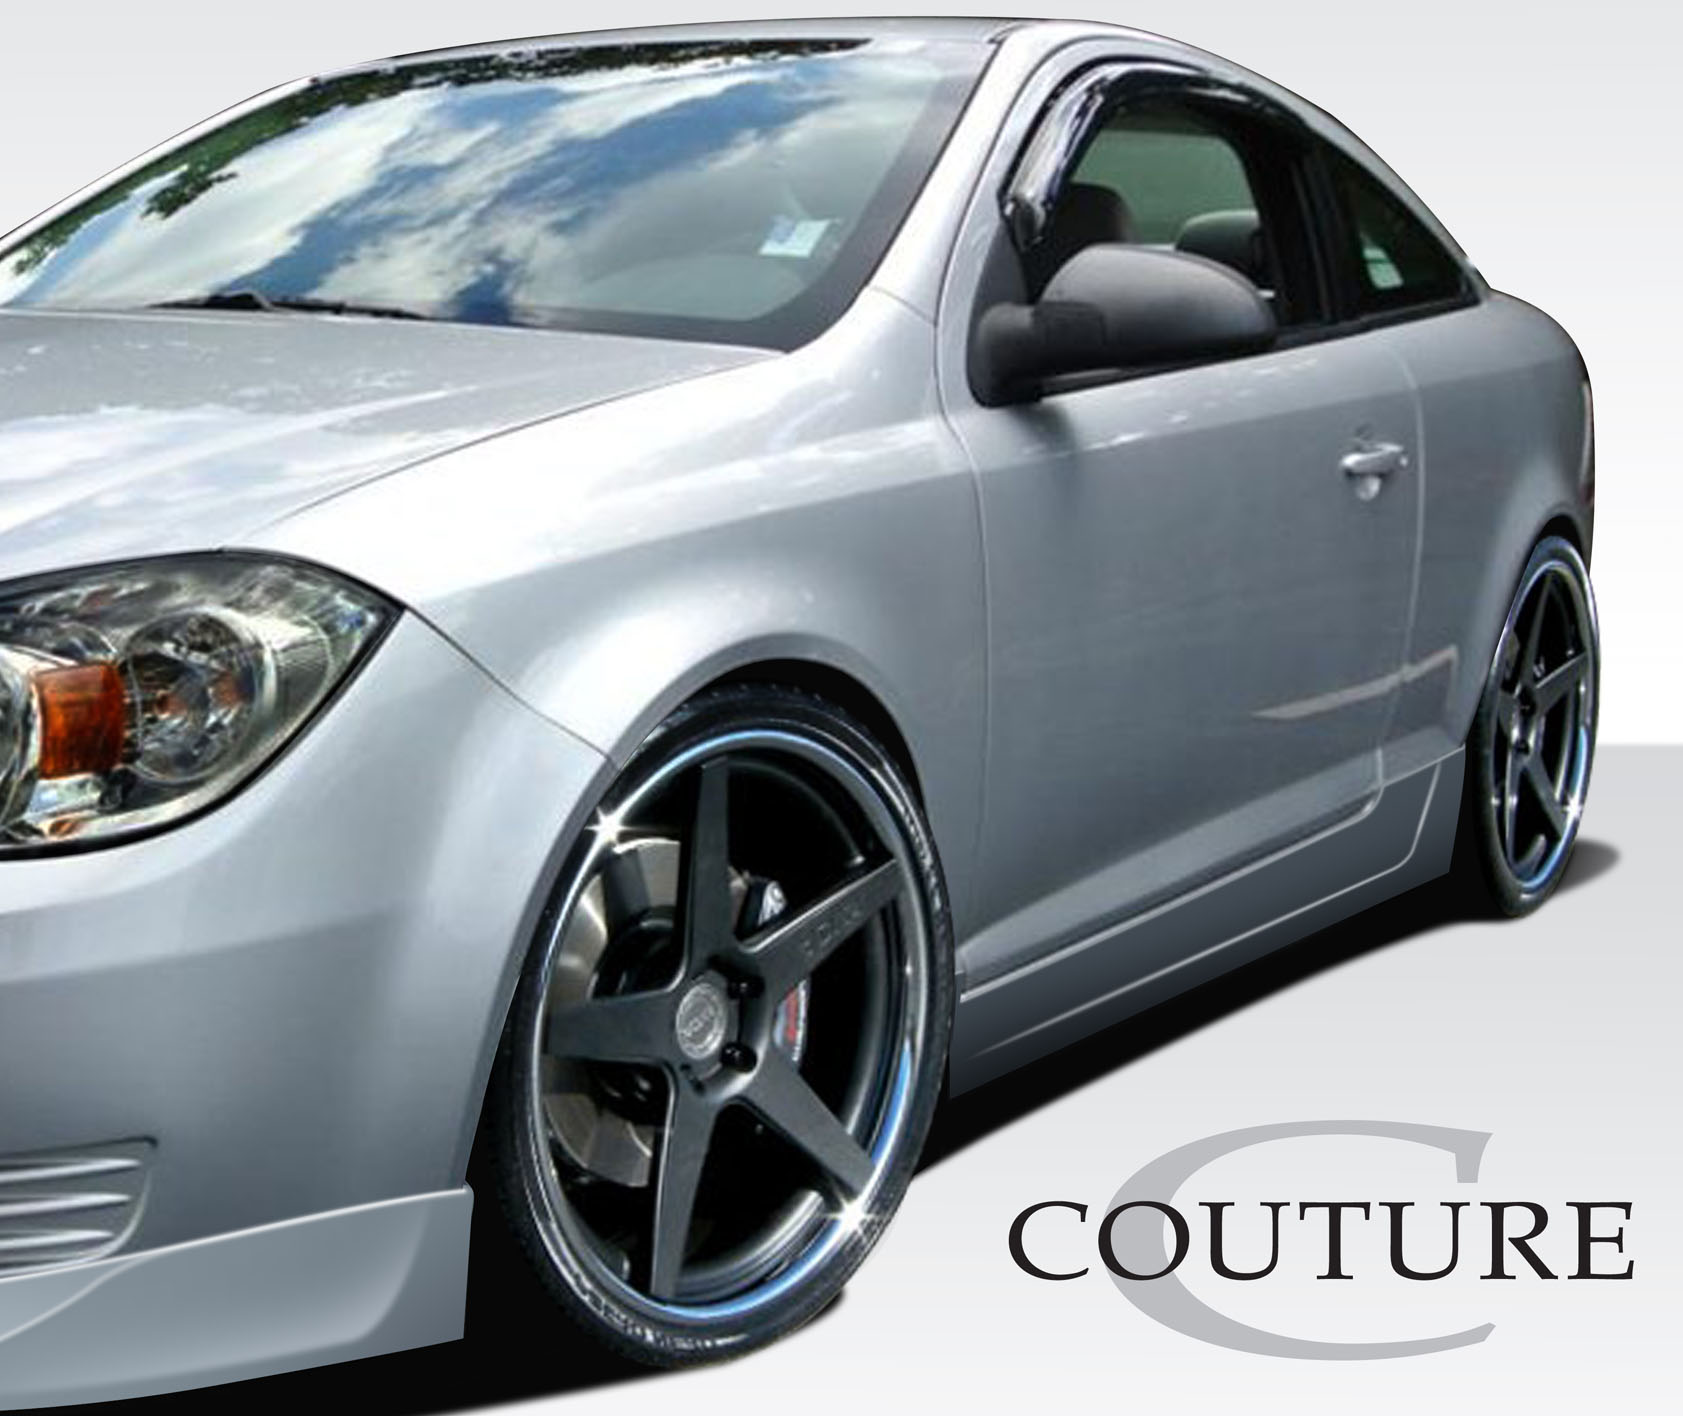 2005 Chevrolet Cobalt 2DR - Polyurethane Sideskirts Bodykit - 2005-2010 Chevrolet Cobalt 2DR Couture Vortex Side Skirt Rocker Panels (base model) - 2